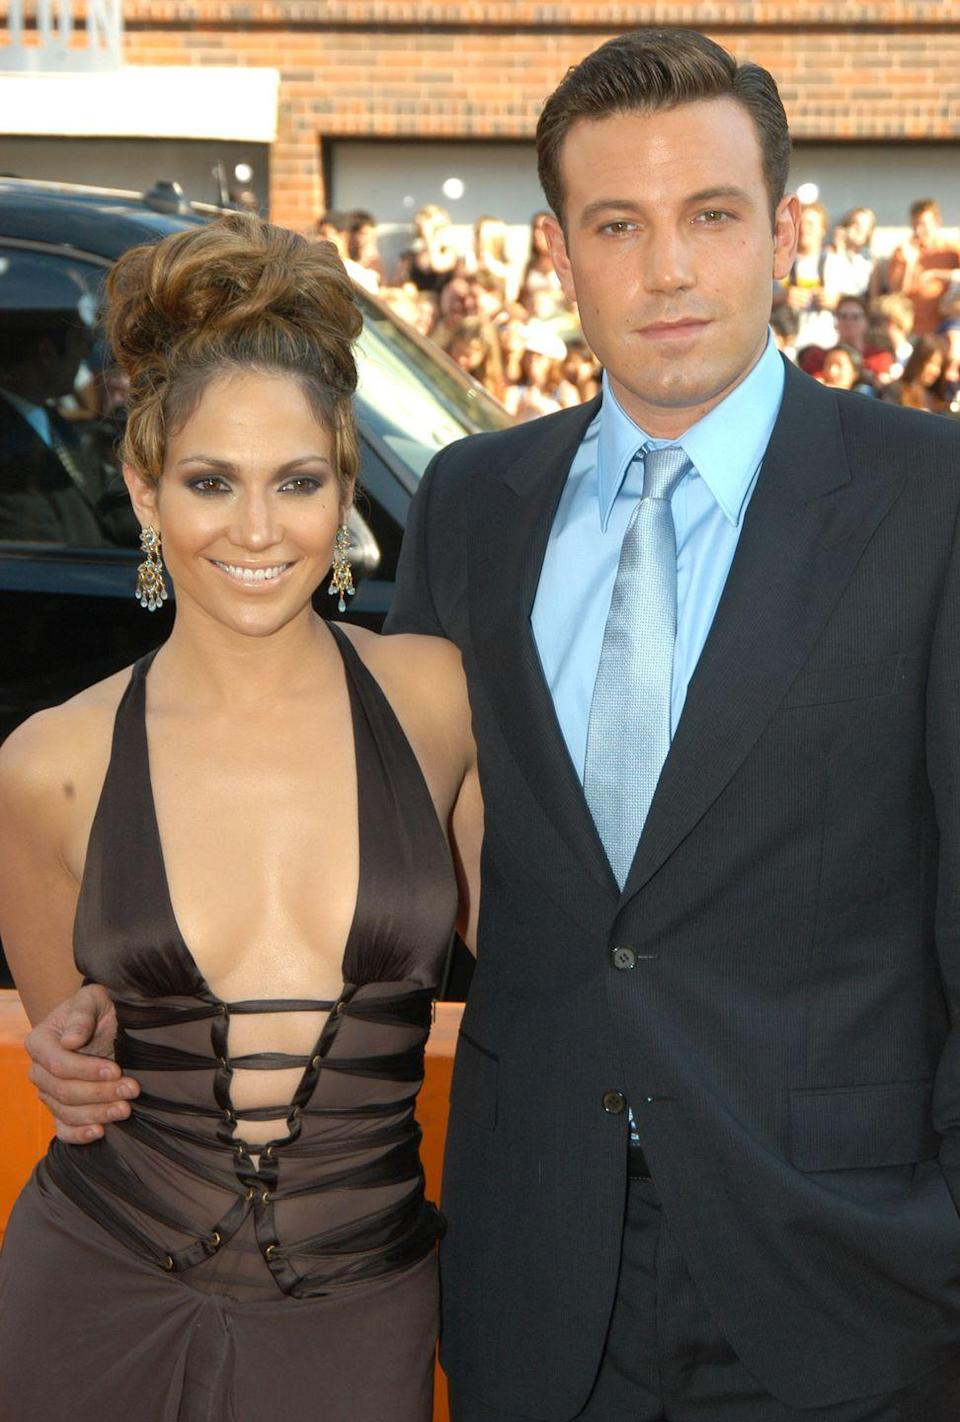 """<p>Ben has had other super high-profile relationships with his costars. Among them is Jenny from the Block herself. JLo and Ben (Bennifer, if you will) started dating on the set of Gigli in 2002. </p><p>The couple was engaged to be married, but they called off the wedding weeks before the nuptials. 'We didn't try to have a public relationship,' <a href=""""https://www.eonline.com/de/news/751699/jennifer-lopez-reflects-on-past-relationship-with-ben-affleck-there-was-a-genuine-love"""" rel=""""nofollow noopener"""" target=""""_blank"""" data-ylk=""""slk:Jennifer said"""" class=""""link rapid-noclick-resp"""">Jennifer said</a> years later. 'We just happened to be together at the birth of the tabloids, and it was like, """"Oh my God."""" It was just a lot of pressure.'</p>"""